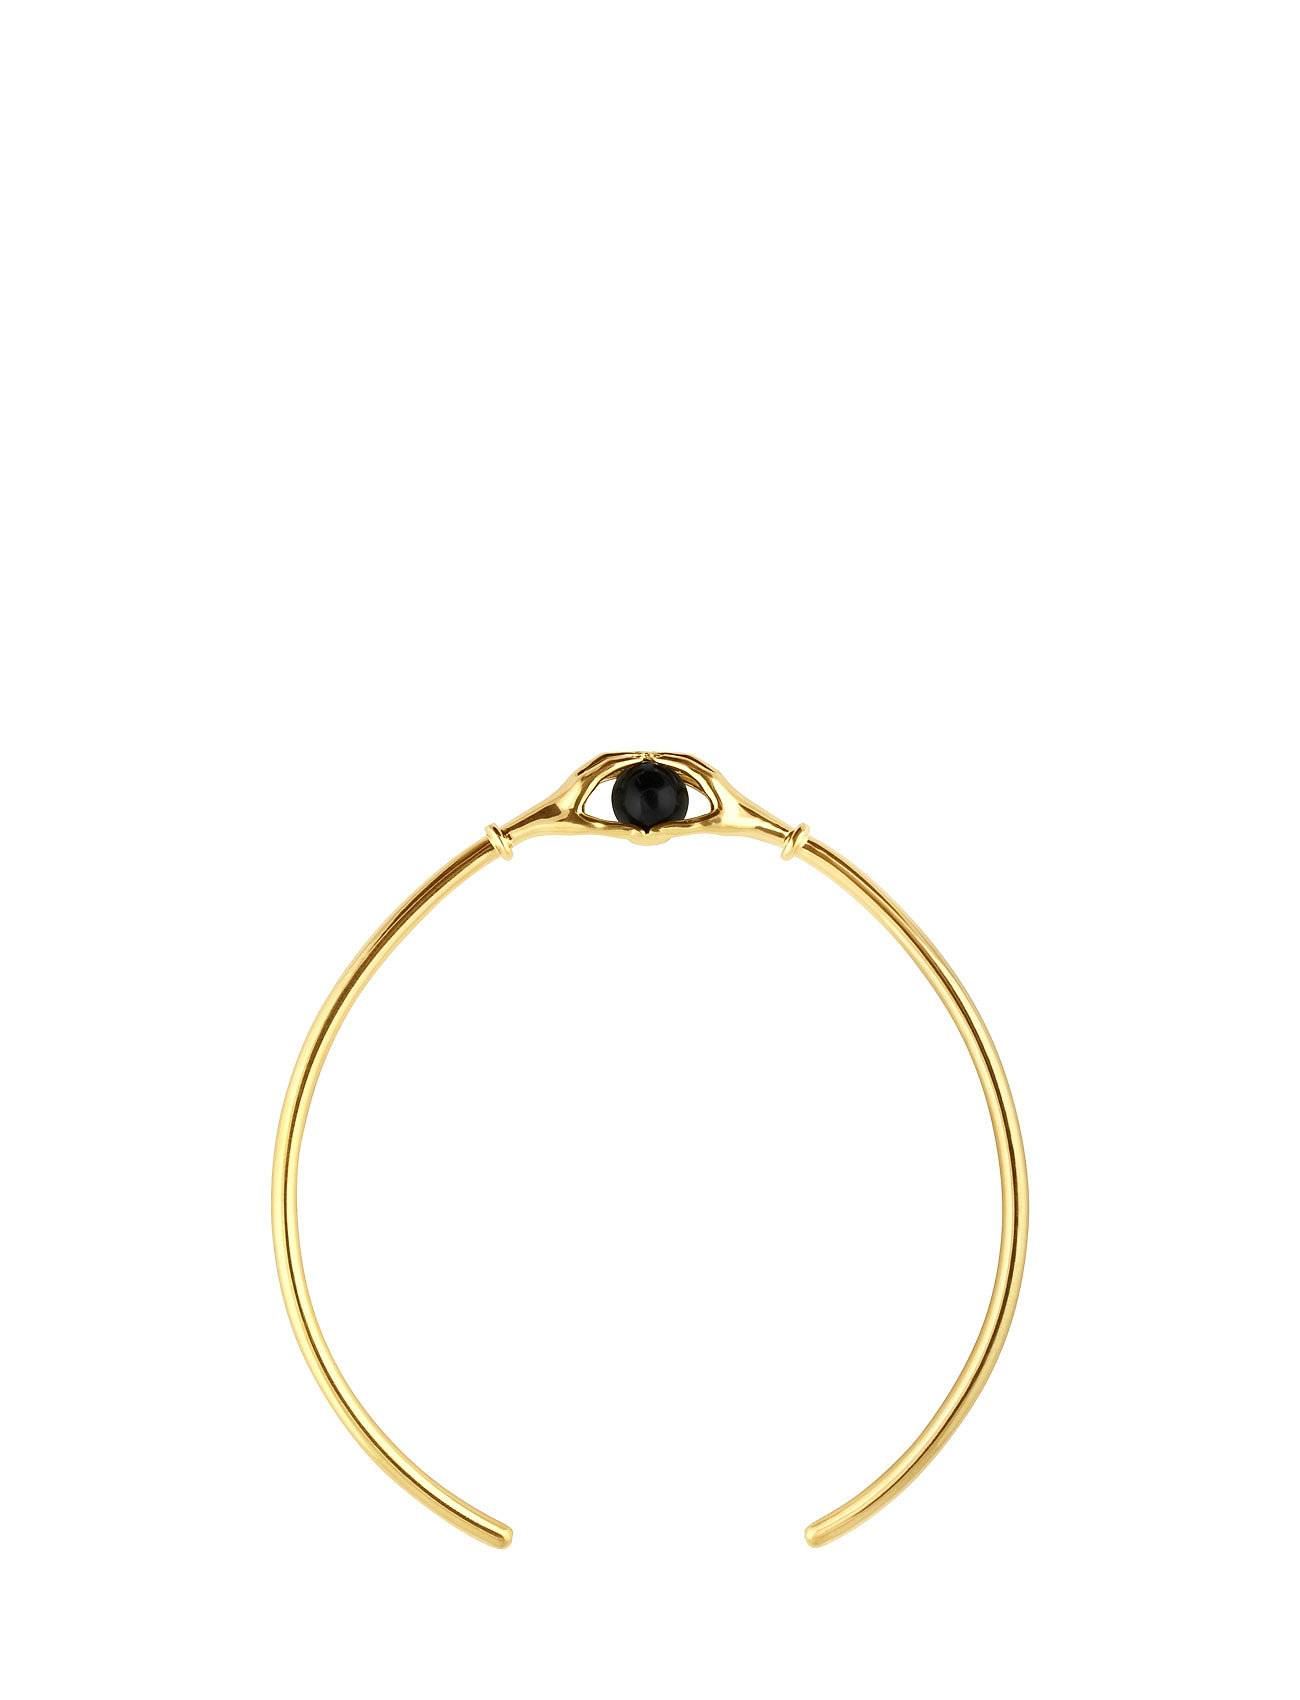 SOPHIE by SOPHIE Hand Choker